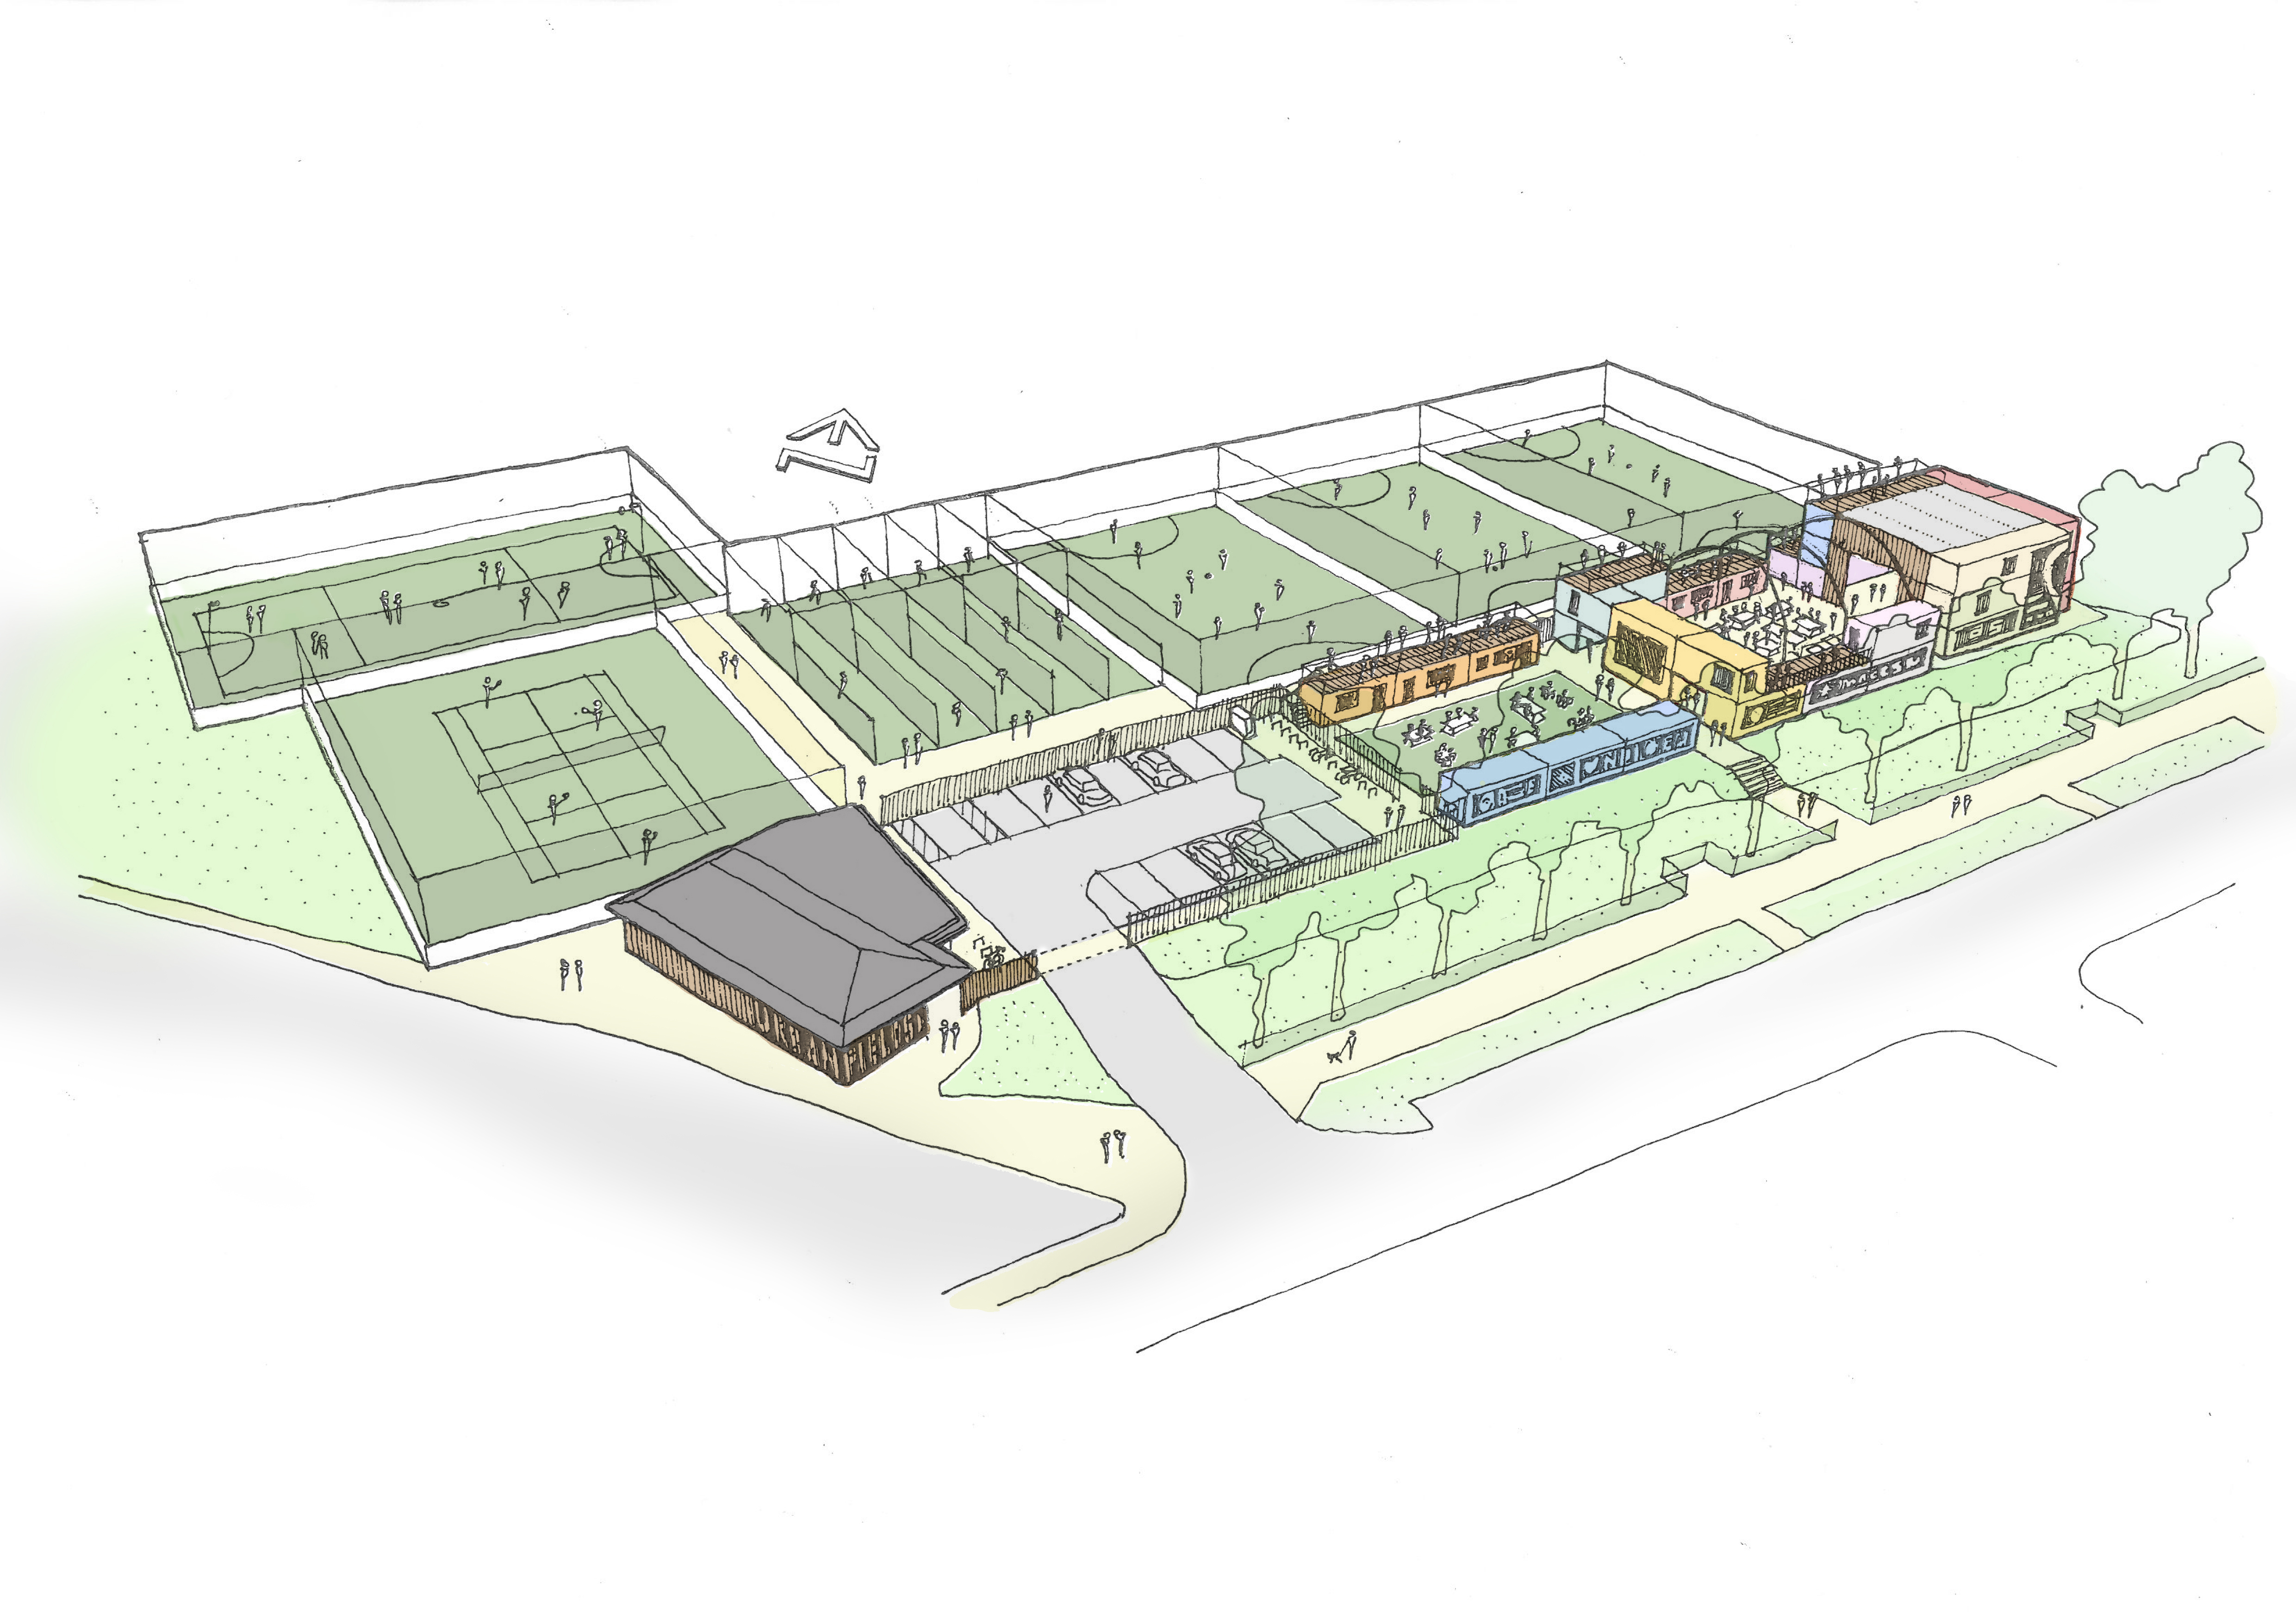 Nelson Street Playing Fields - artist impression of how the Urban fields could look